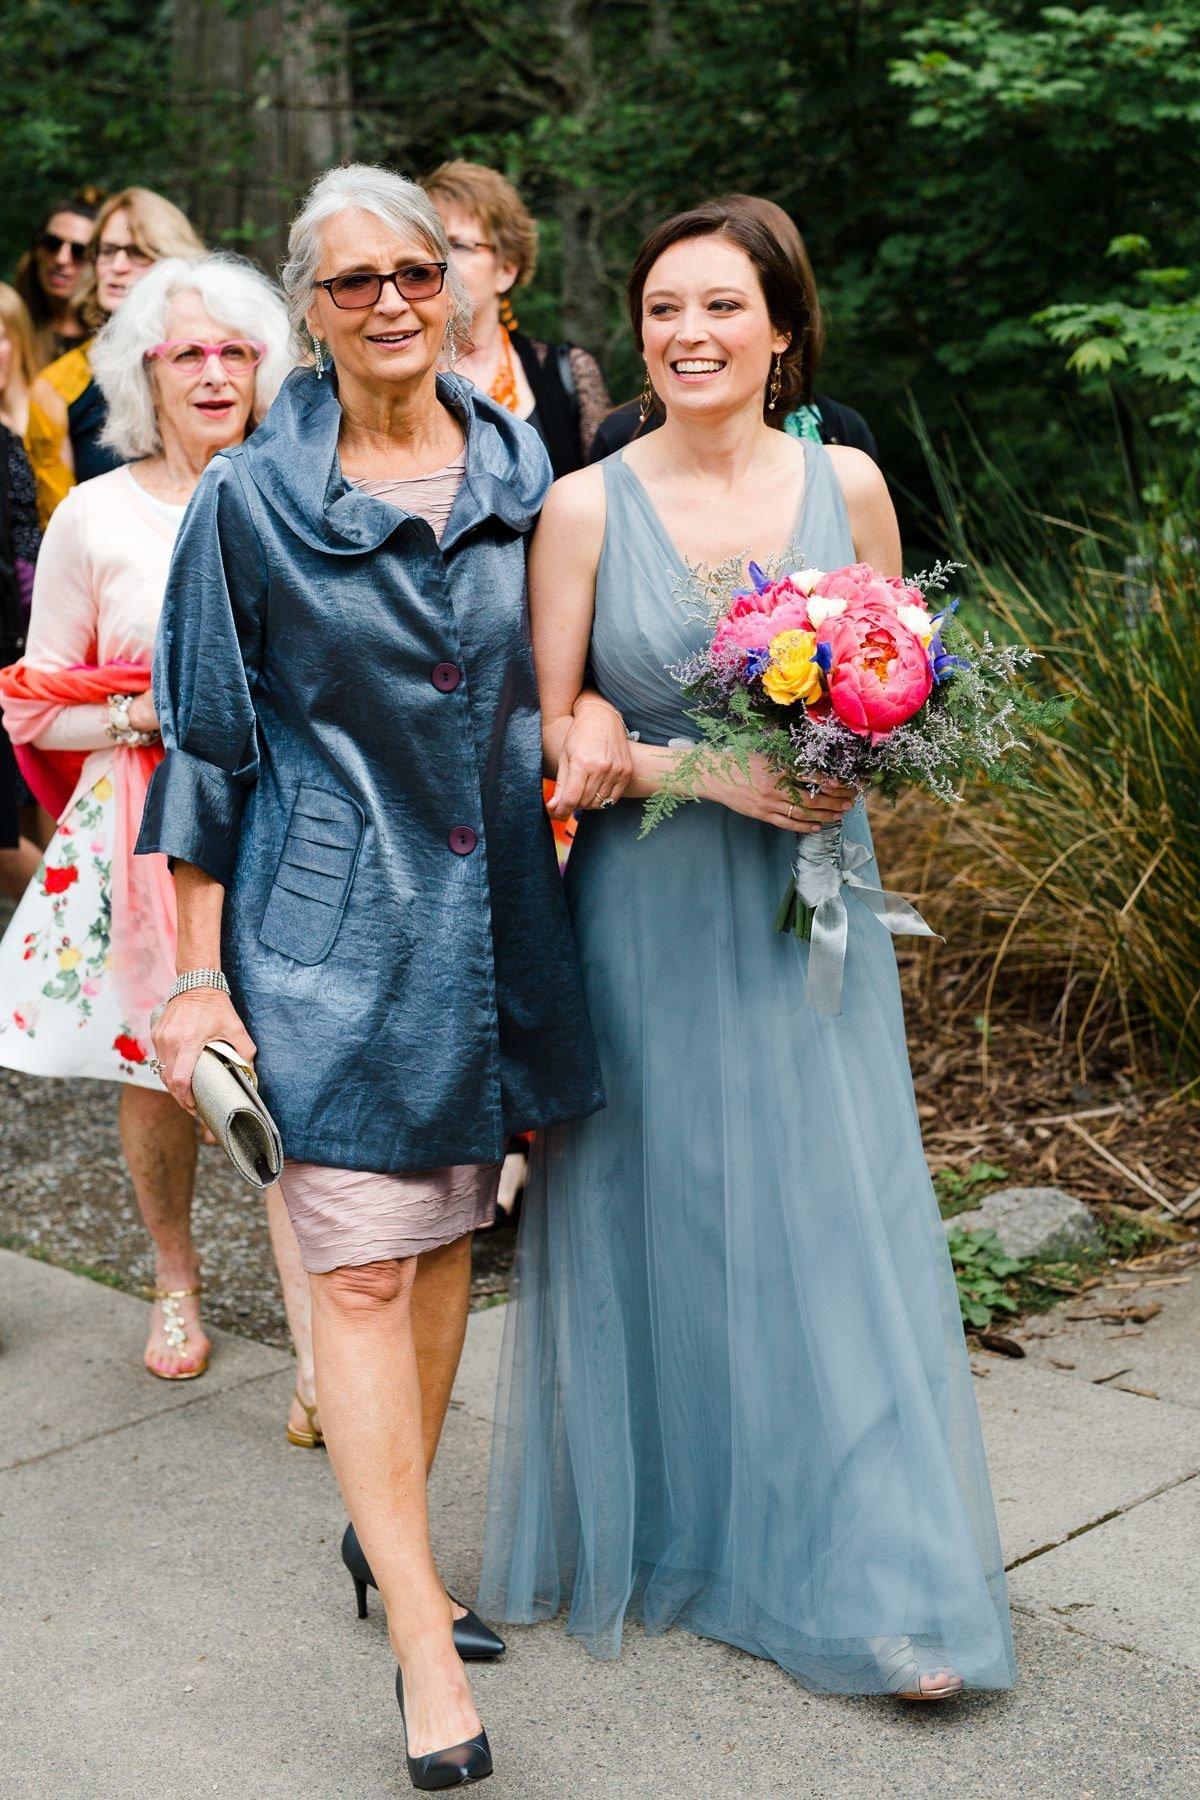 bainbridge-island-washington-wedding-photographer-cameron-zegers-18_1200